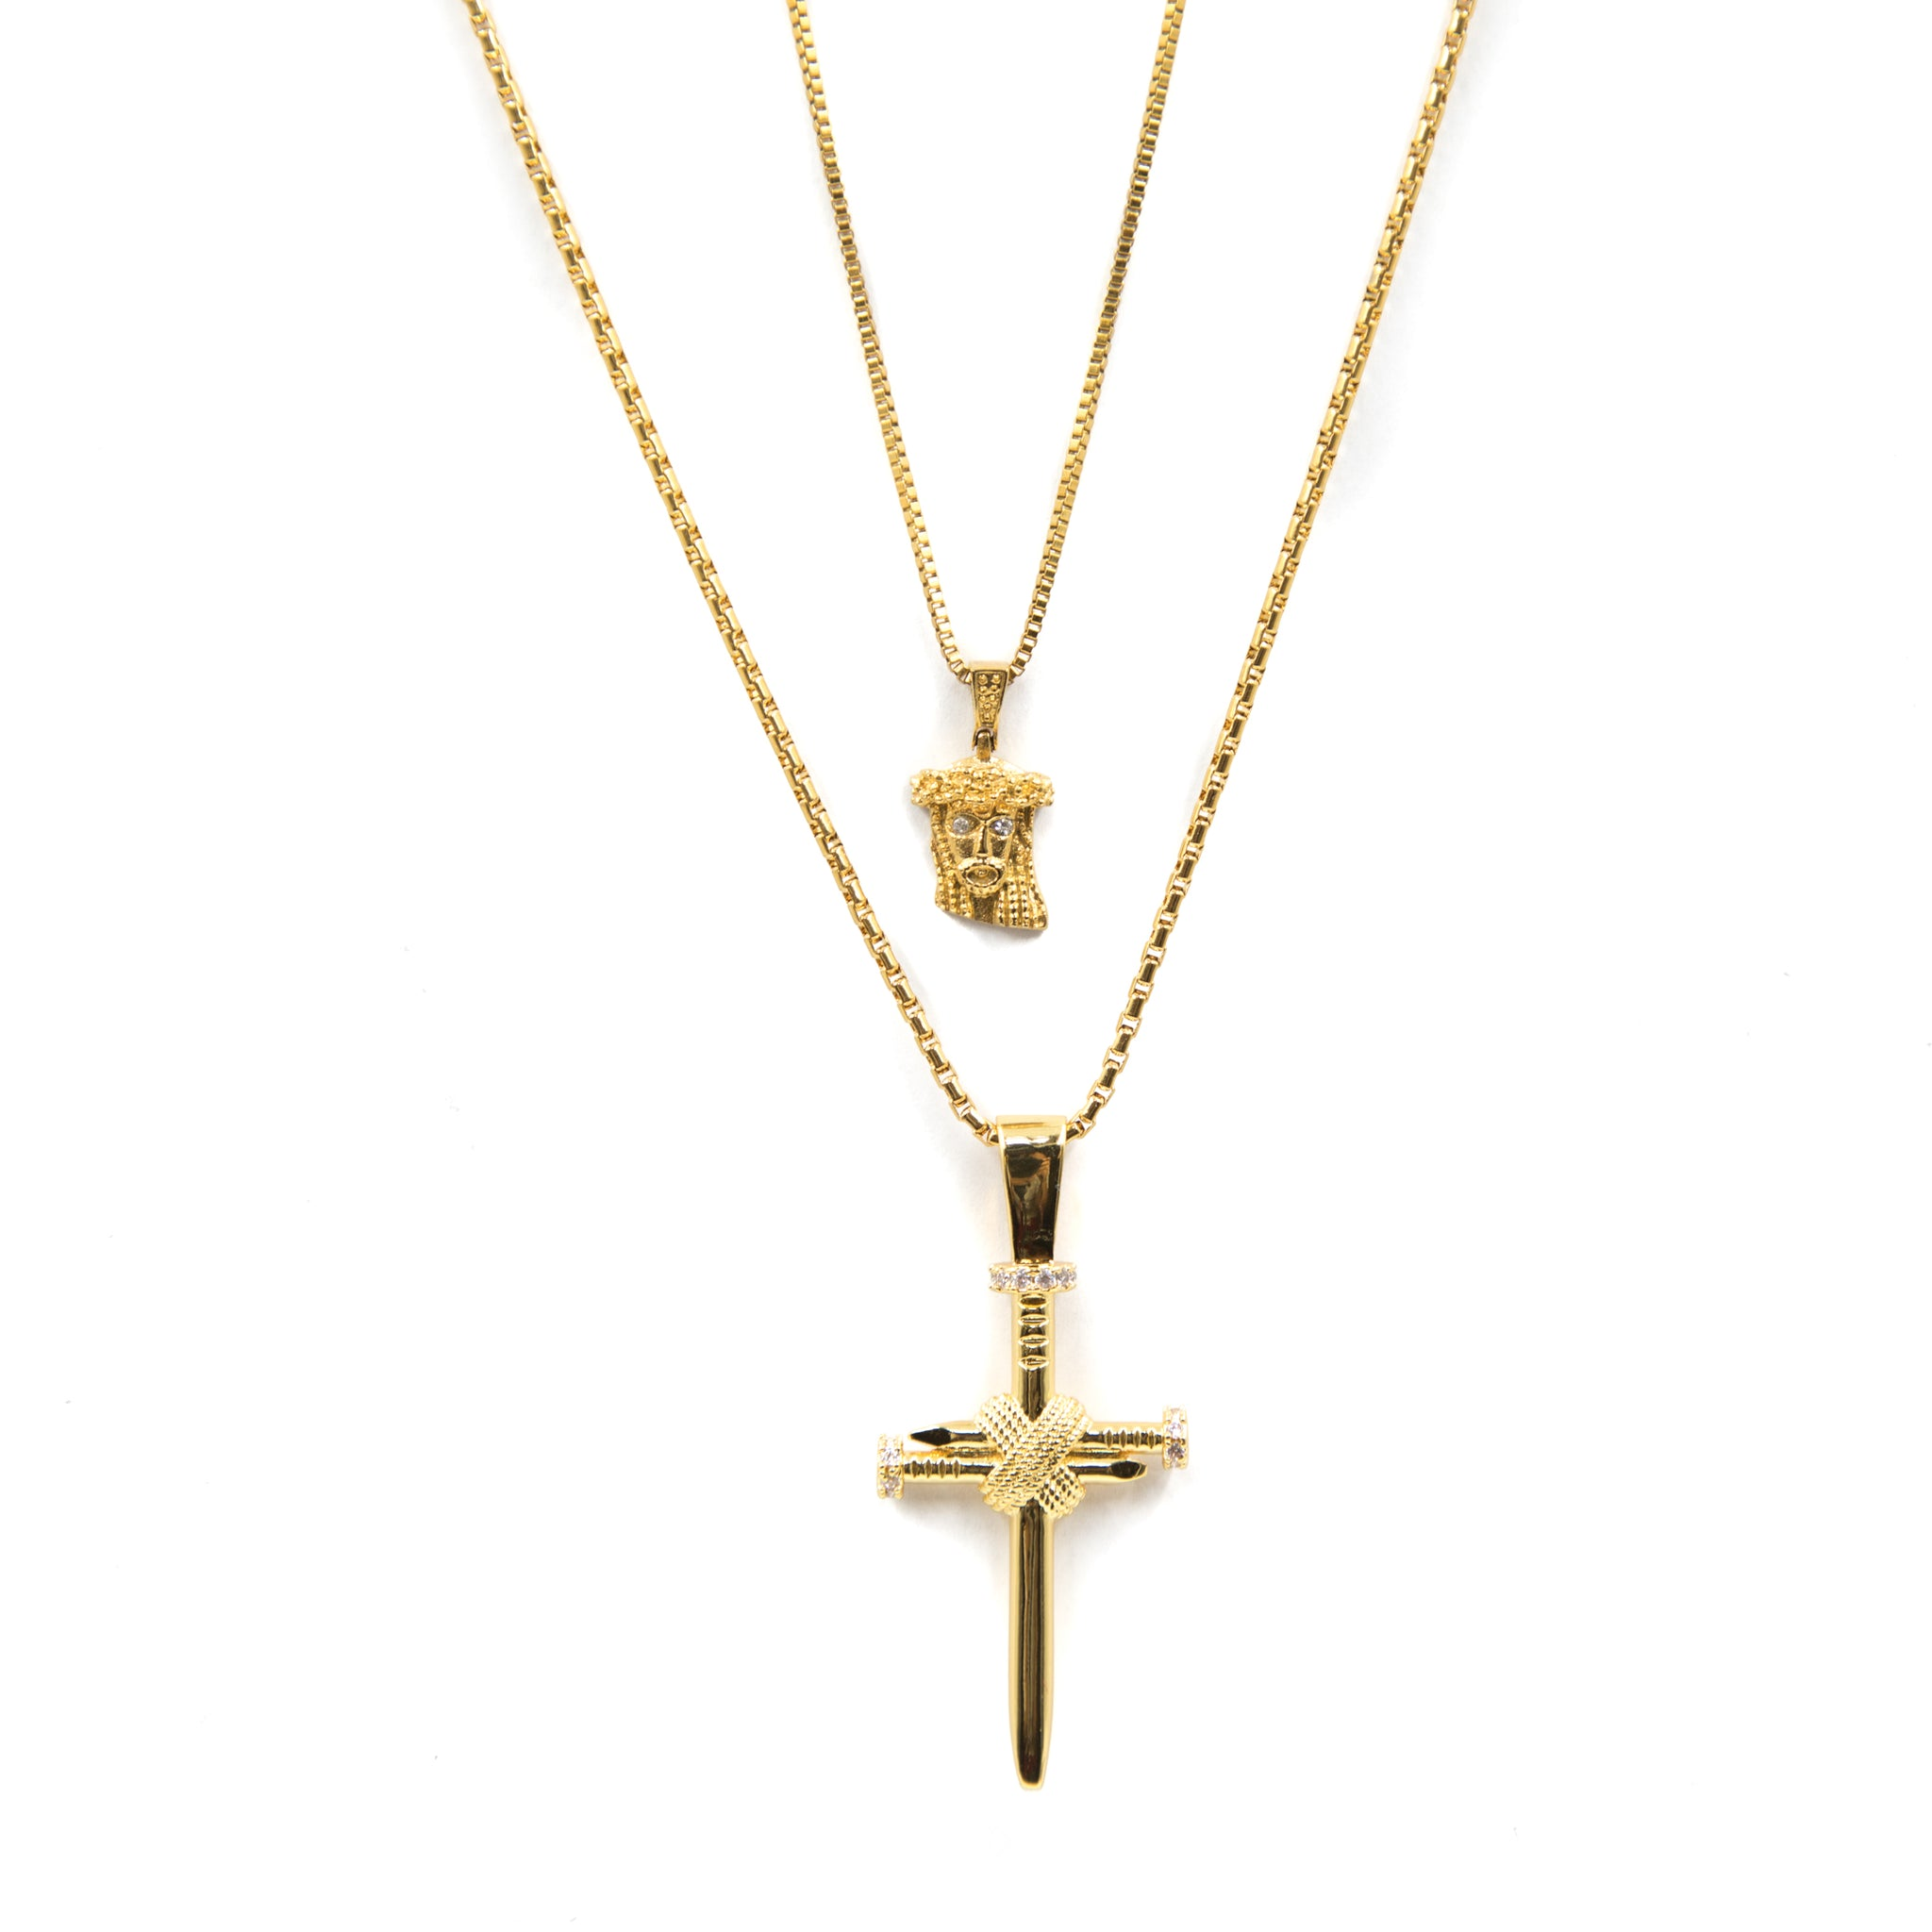 Extra Mini Jesus & Nail Bundle - , Golden Gilt, SNEAKER STUDIO, GOLDEN GILT, DESIGN BY TSS